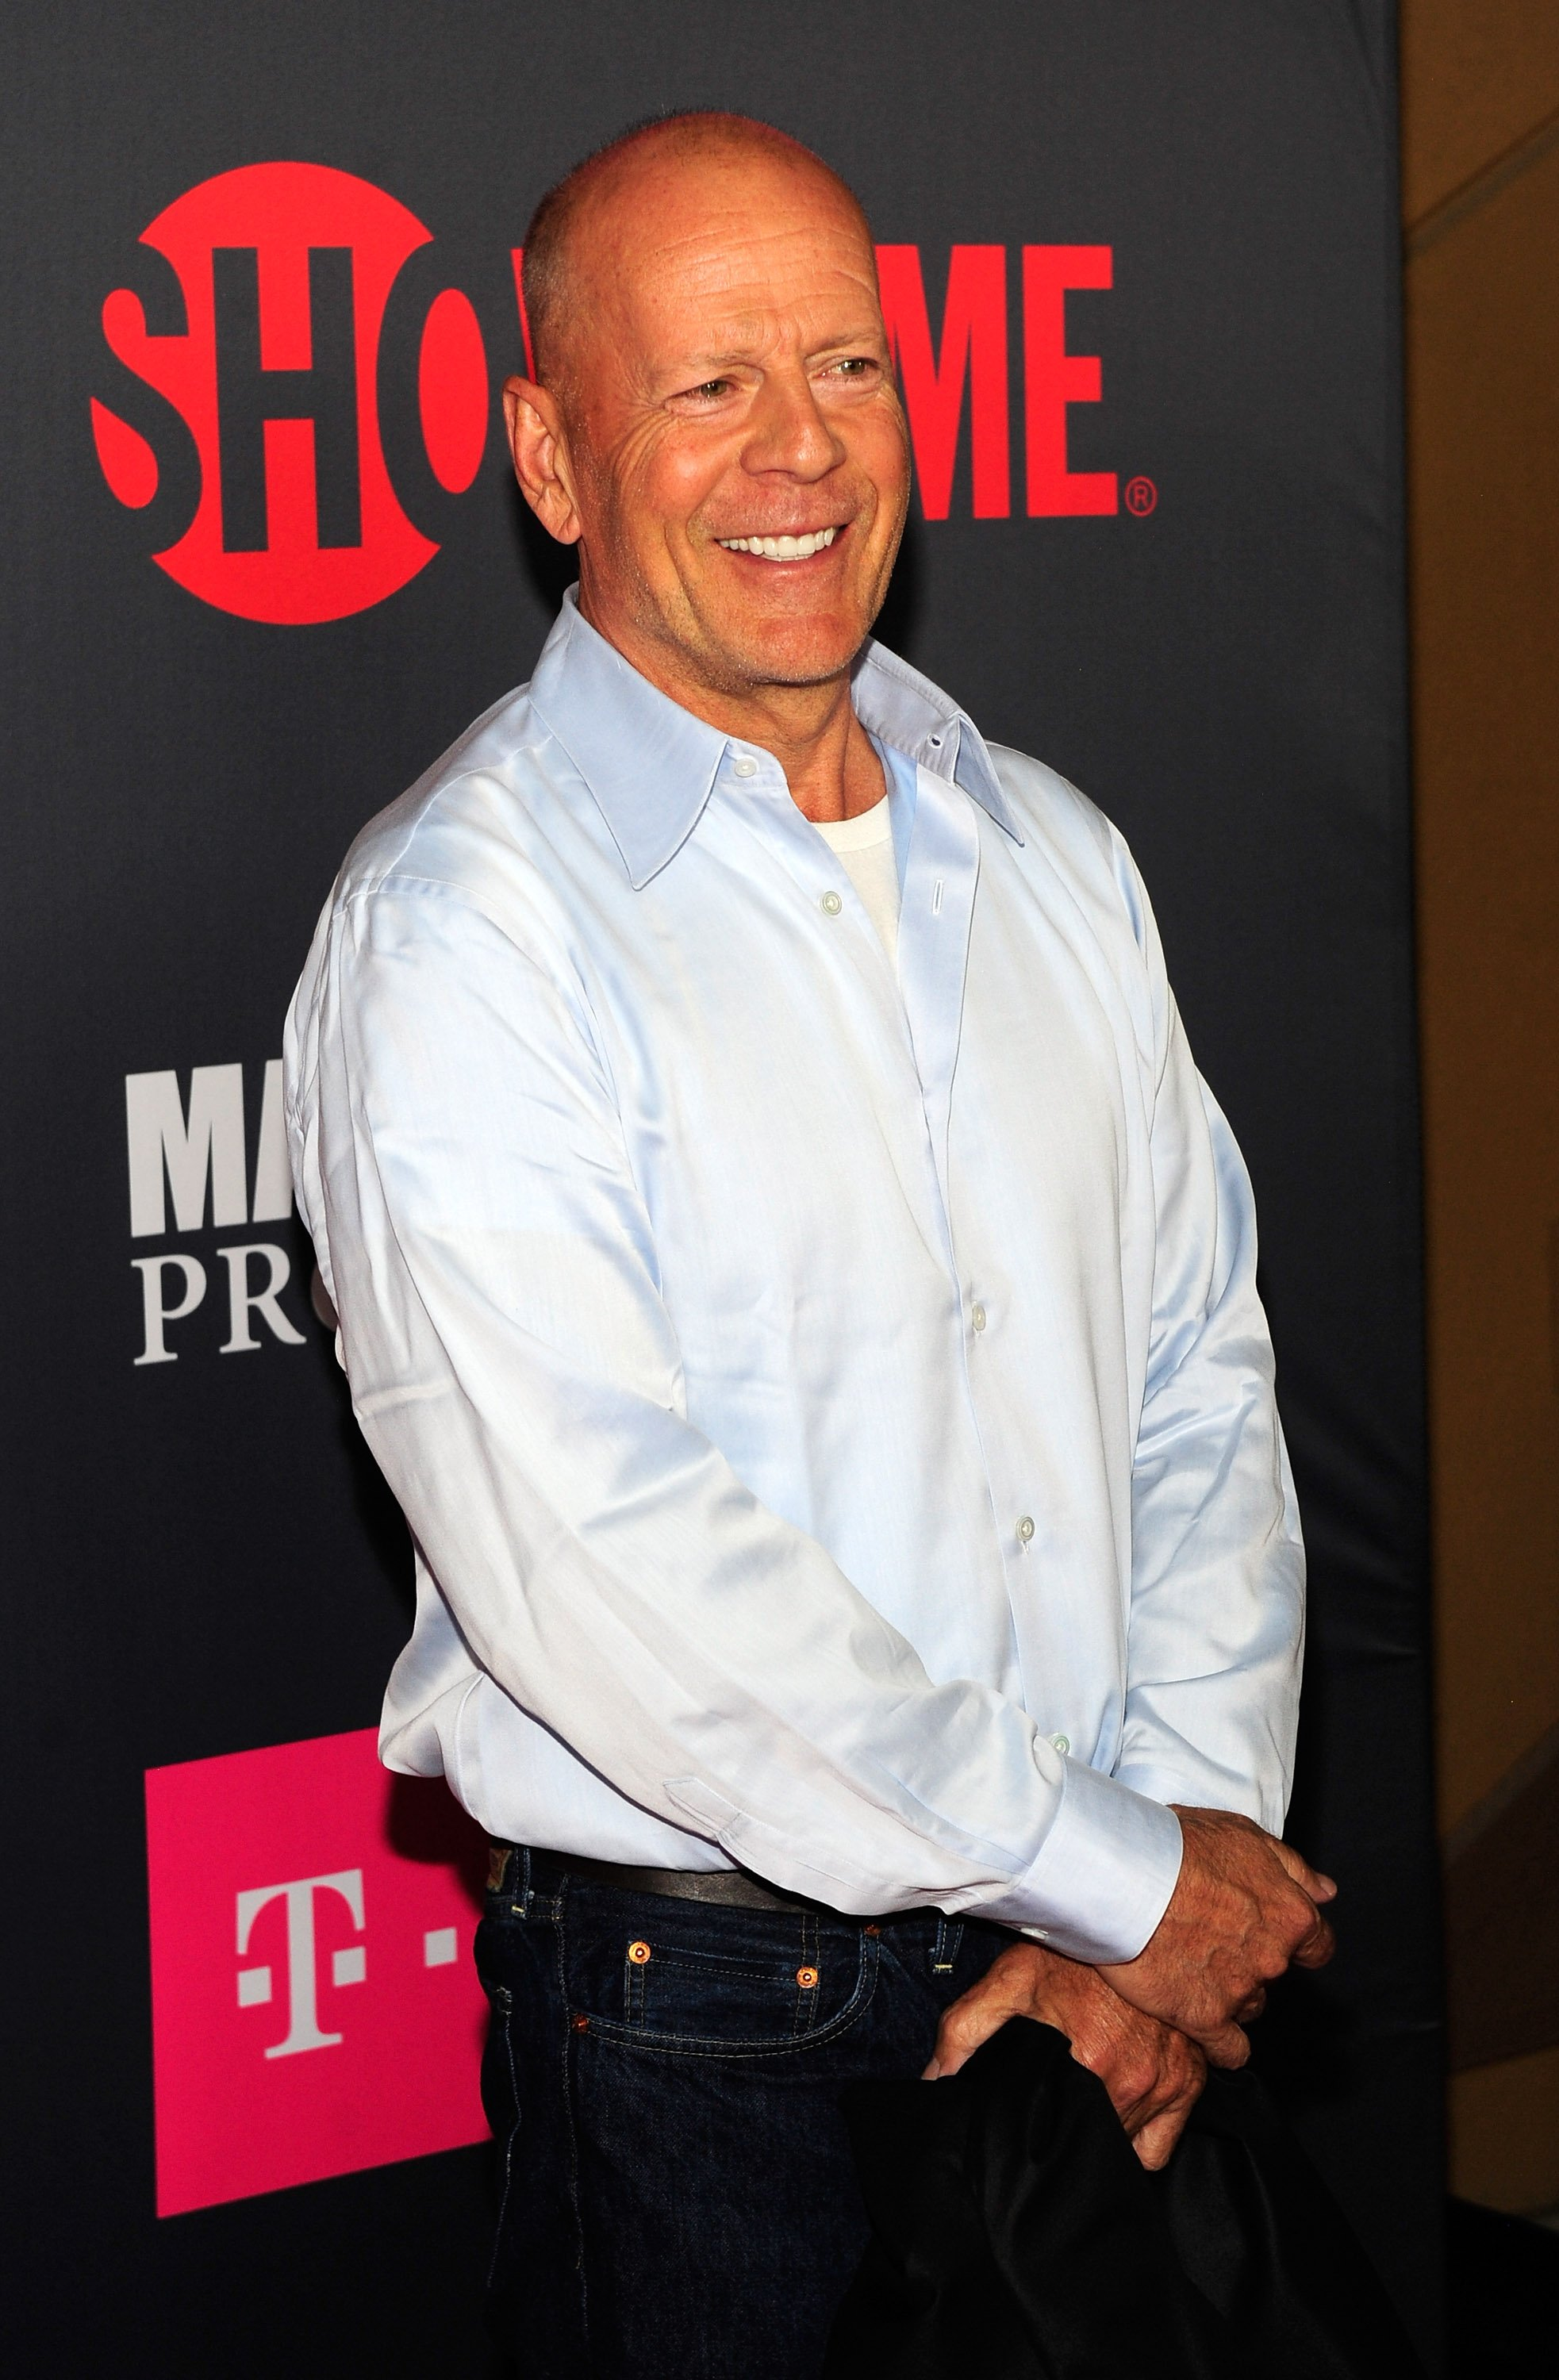 Bruce Willis attends the VIP party before the boxing match between boxer Floyd Mayweather Jr. and Conor McGregor at T-Mobile Arena on August 26, 2017, in Las Vegas, Nevada. Source: Getty Images.